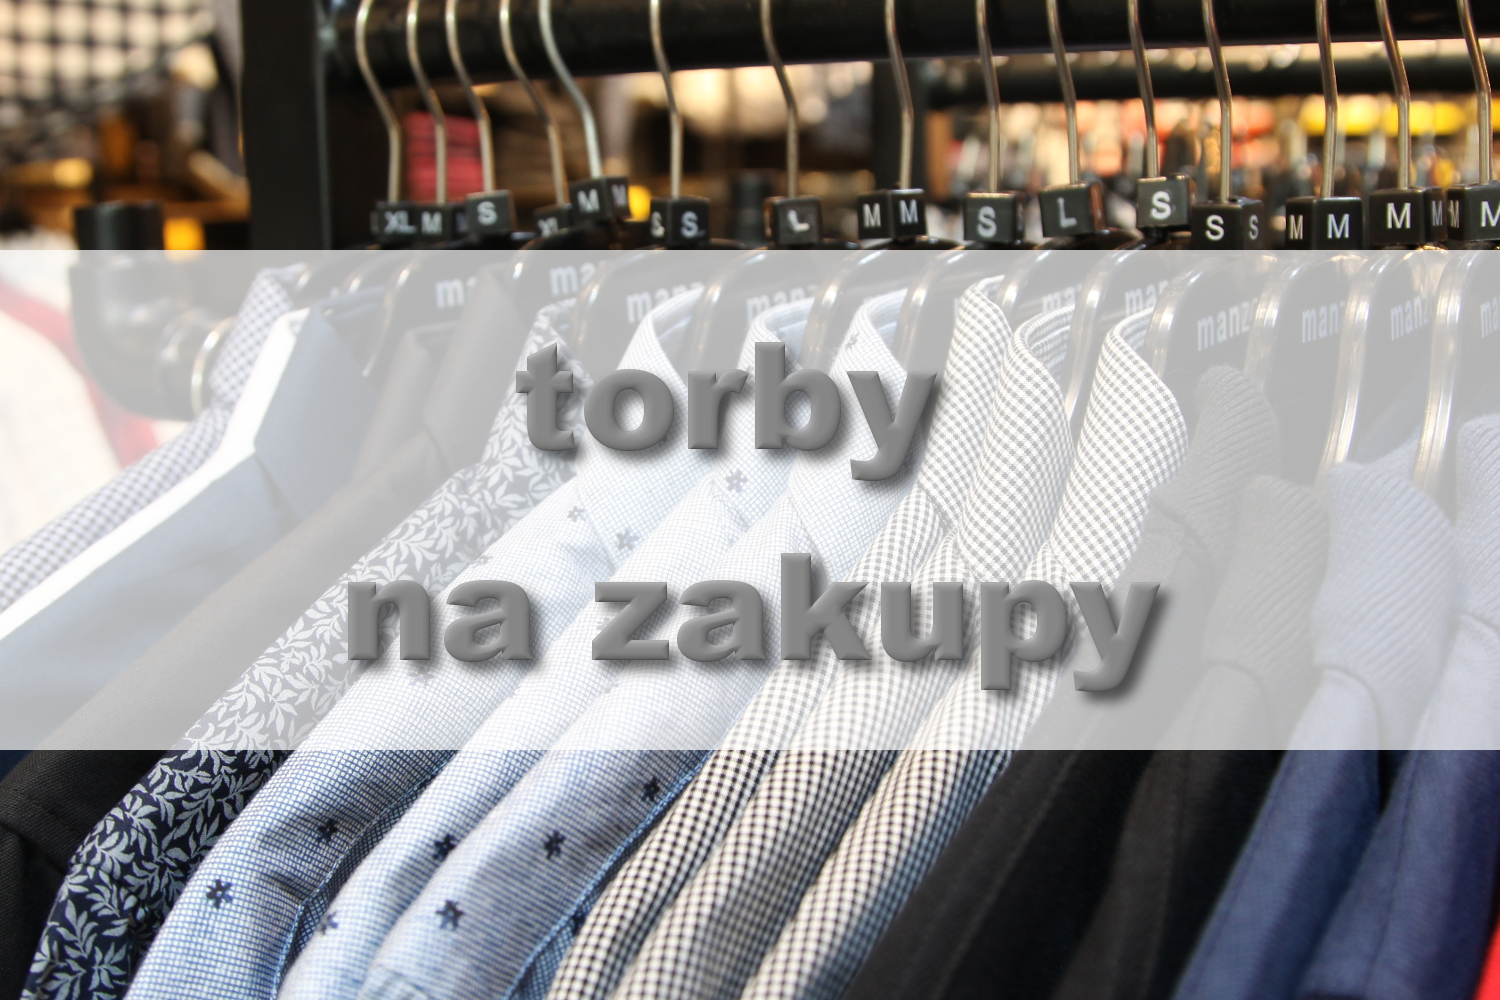 deal torby na zakupy deal